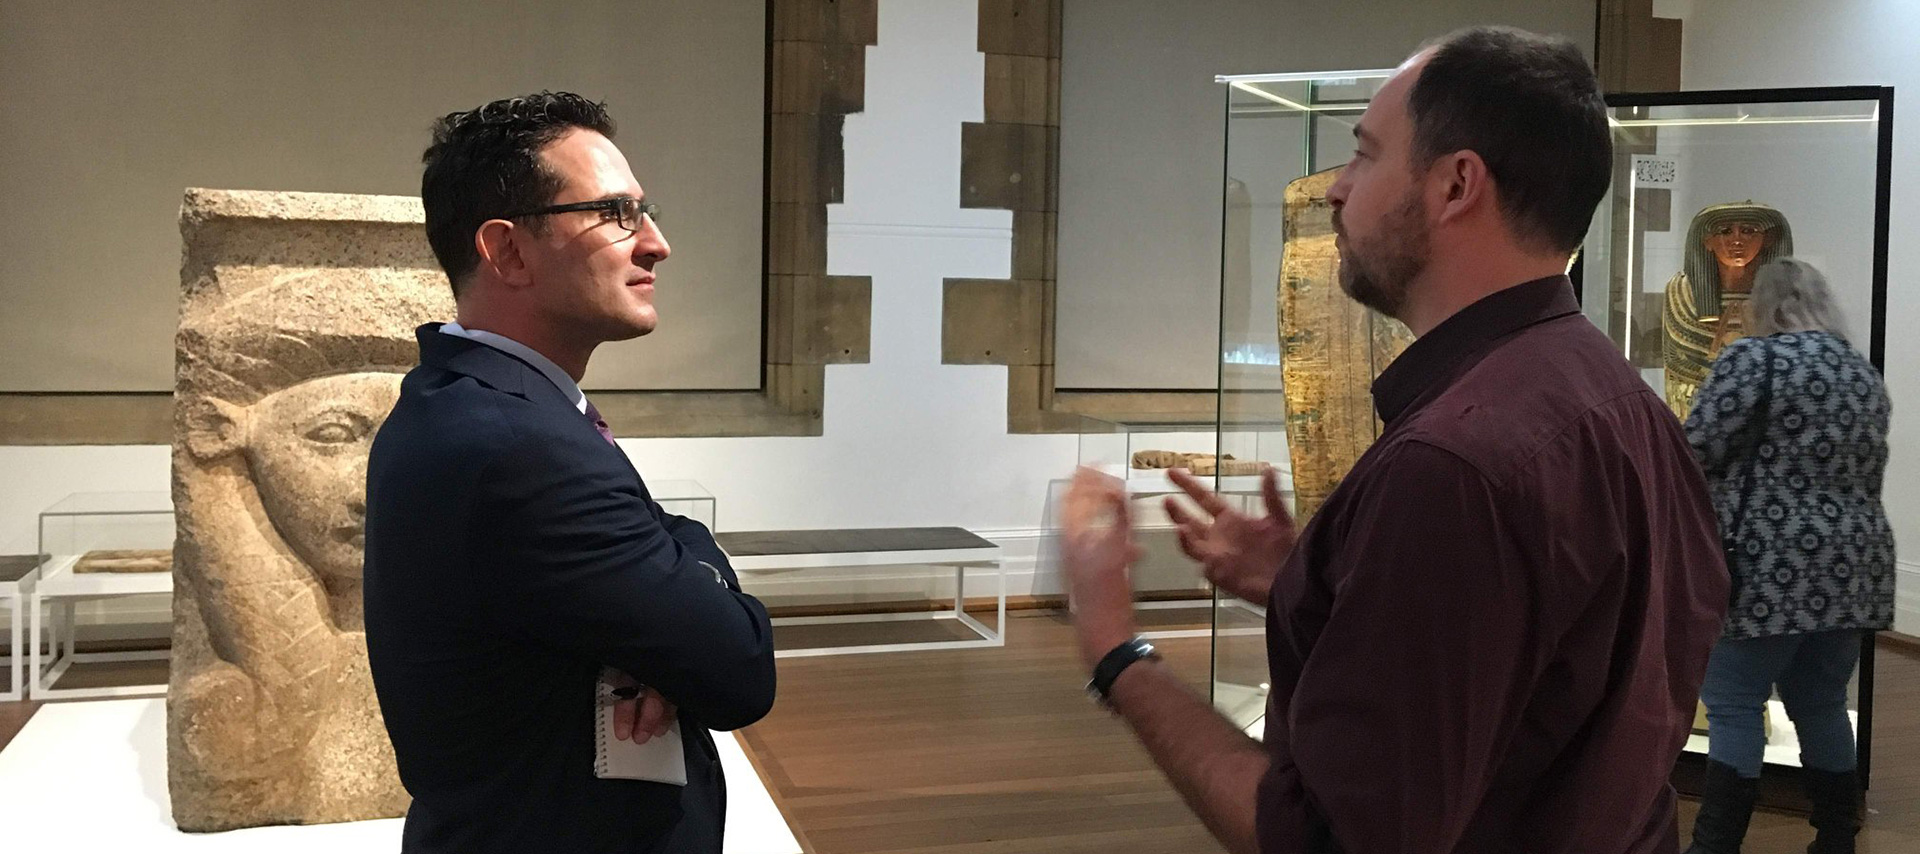 Image of Antonis Kotsonas listening to an unidentified man in a museum, amidst Egyptian materials